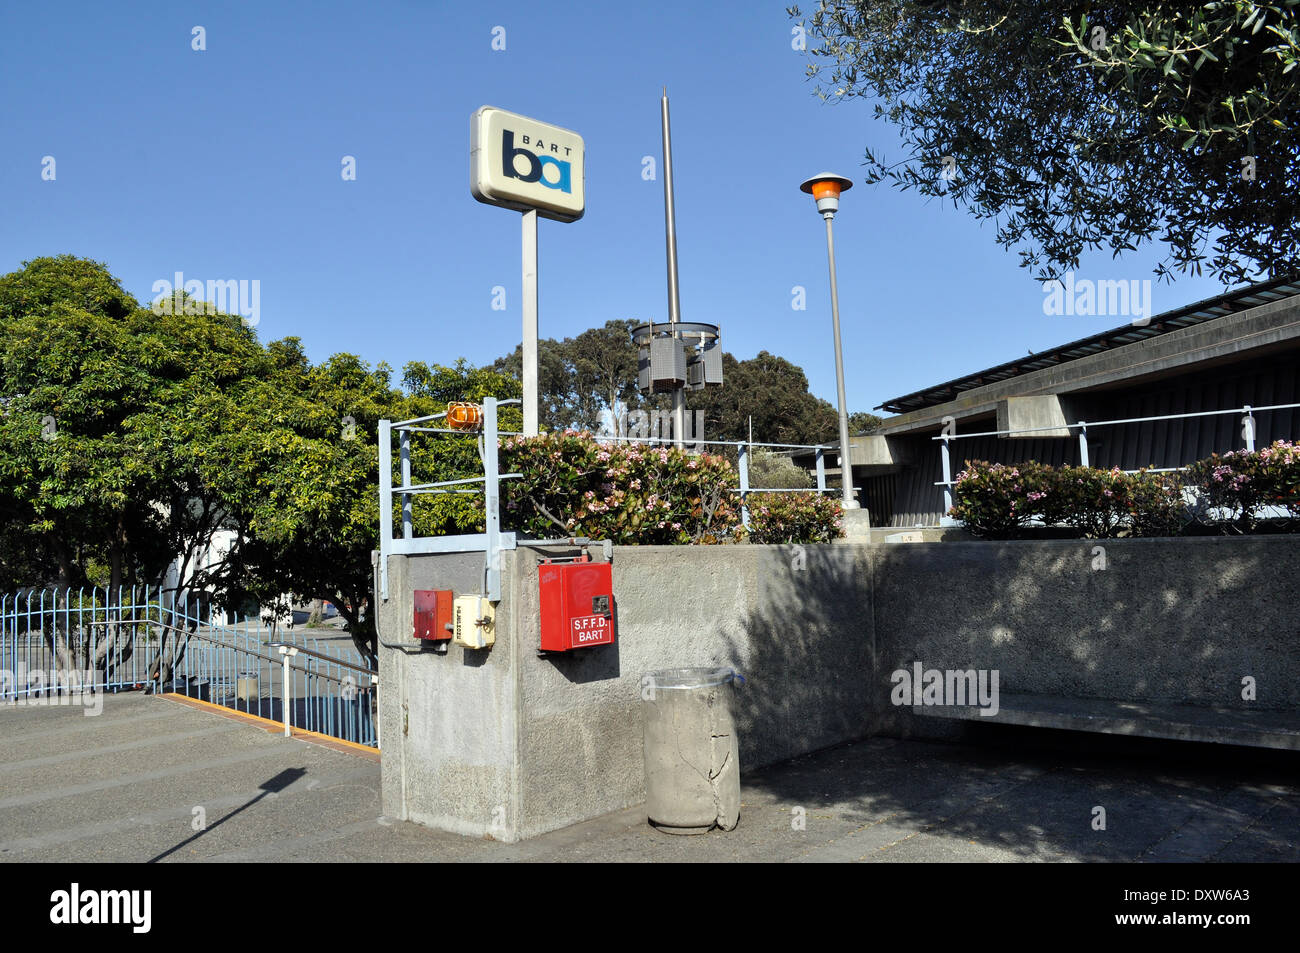 Glen Park BART station - Stock Image